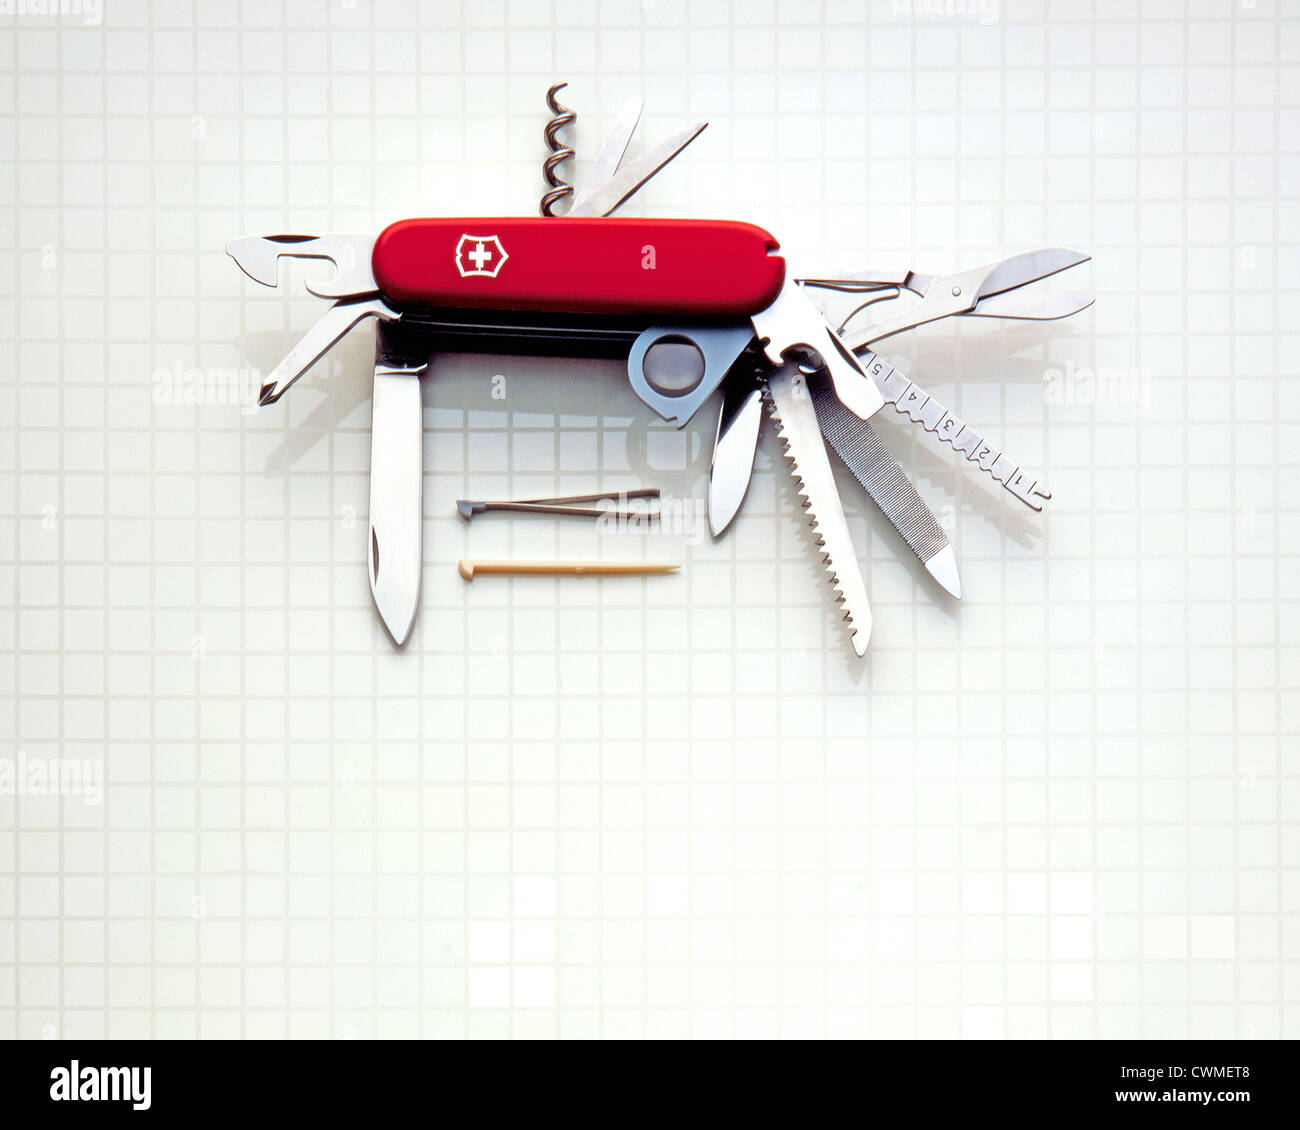 Swiss Army Knife Open - Stock Image